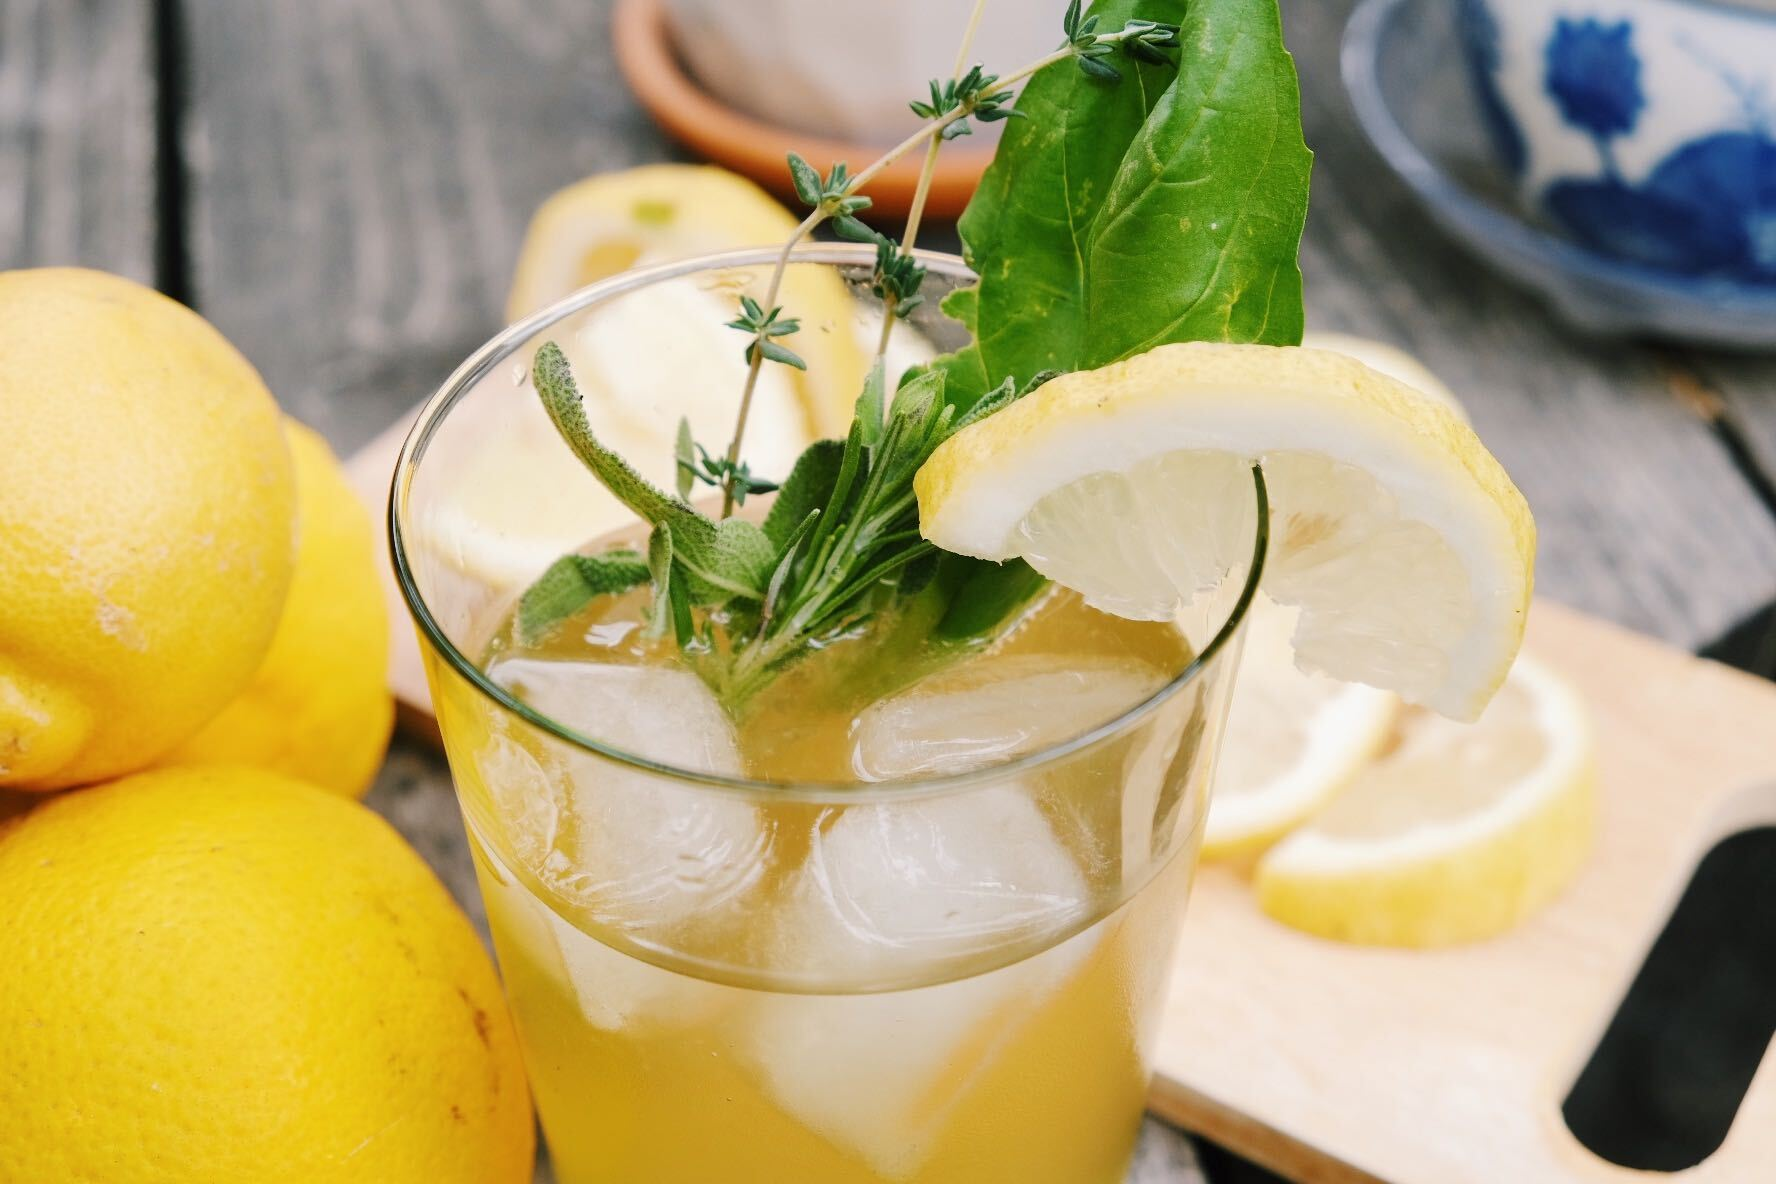 Glass holding ice, yellow lemon juice, and herbs for decoration.